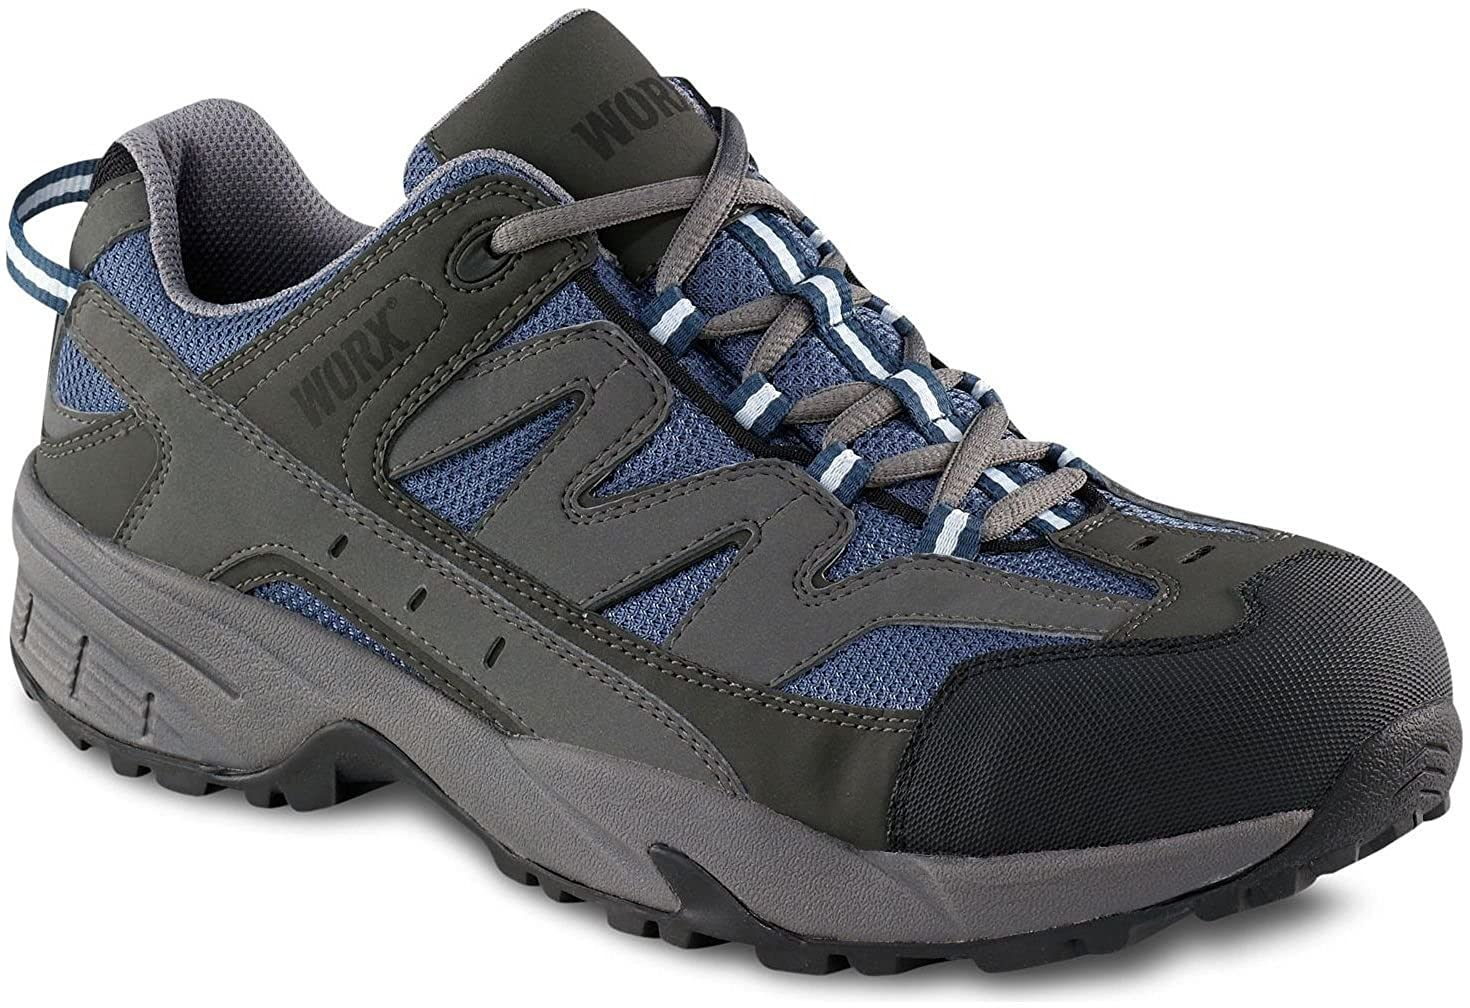 Worx By Red Wing Shoes Men's 5007